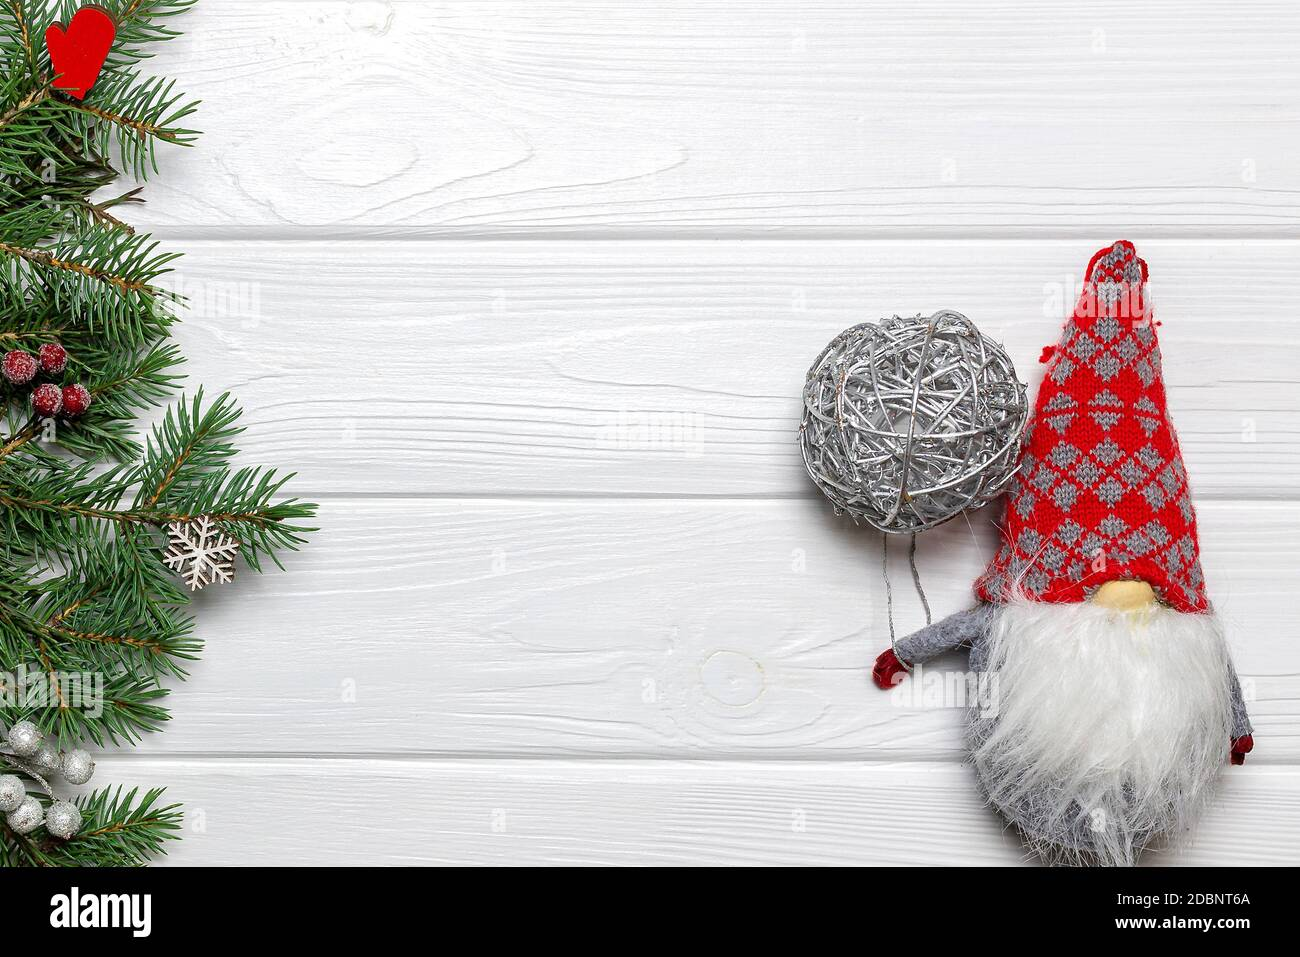 Pine Branches With Snowflake And Mitten Ornaments New Year Gnome With Silver Ball On White Wooden Background Template Copy Space Stock Photo Alamy